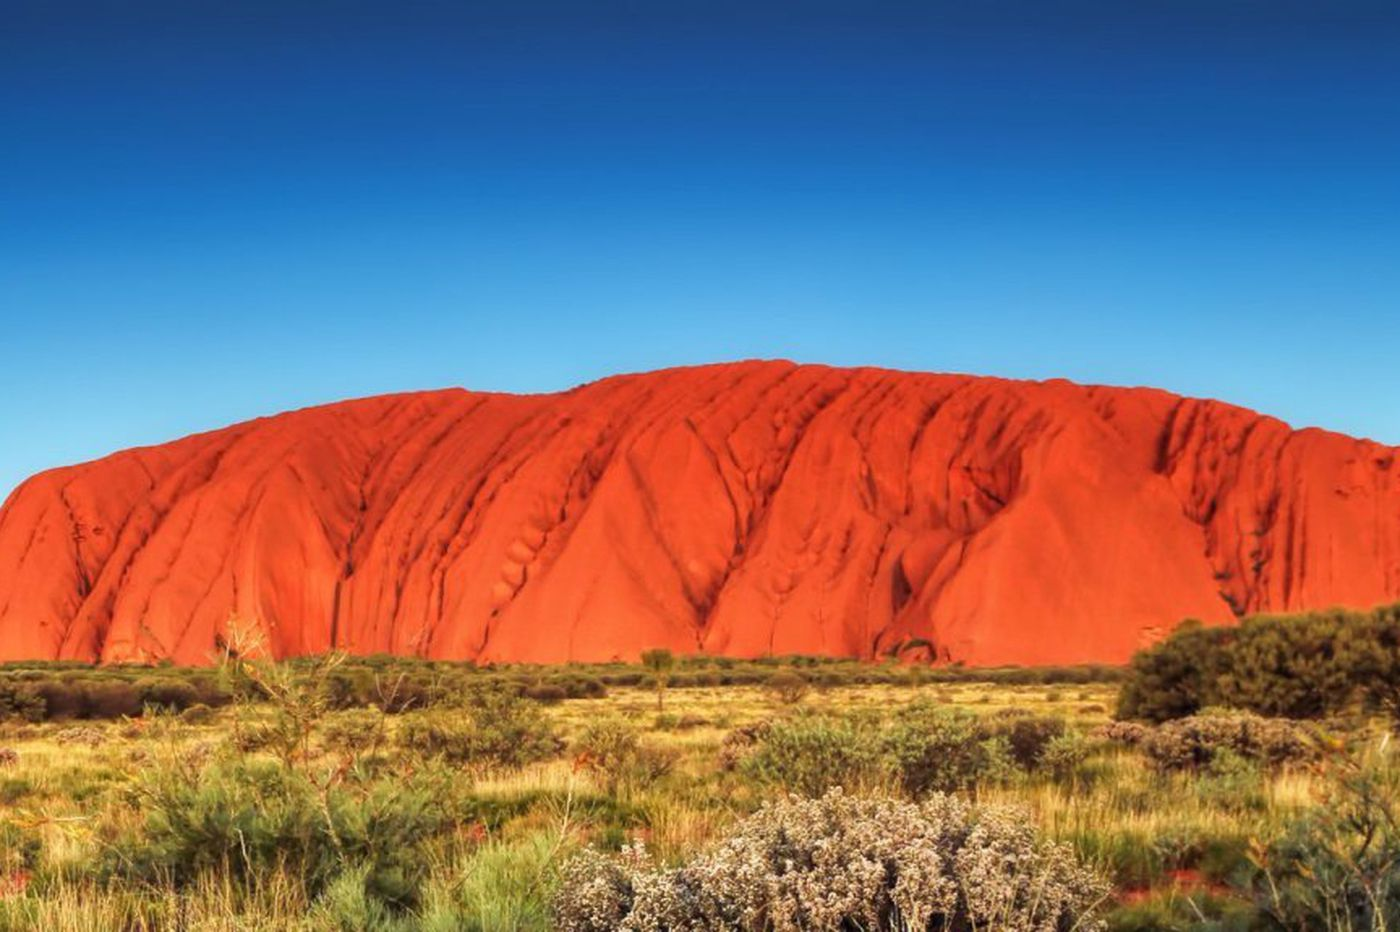 A human traffic jam as climbers converge at Australia's Uluru before ban takes affect